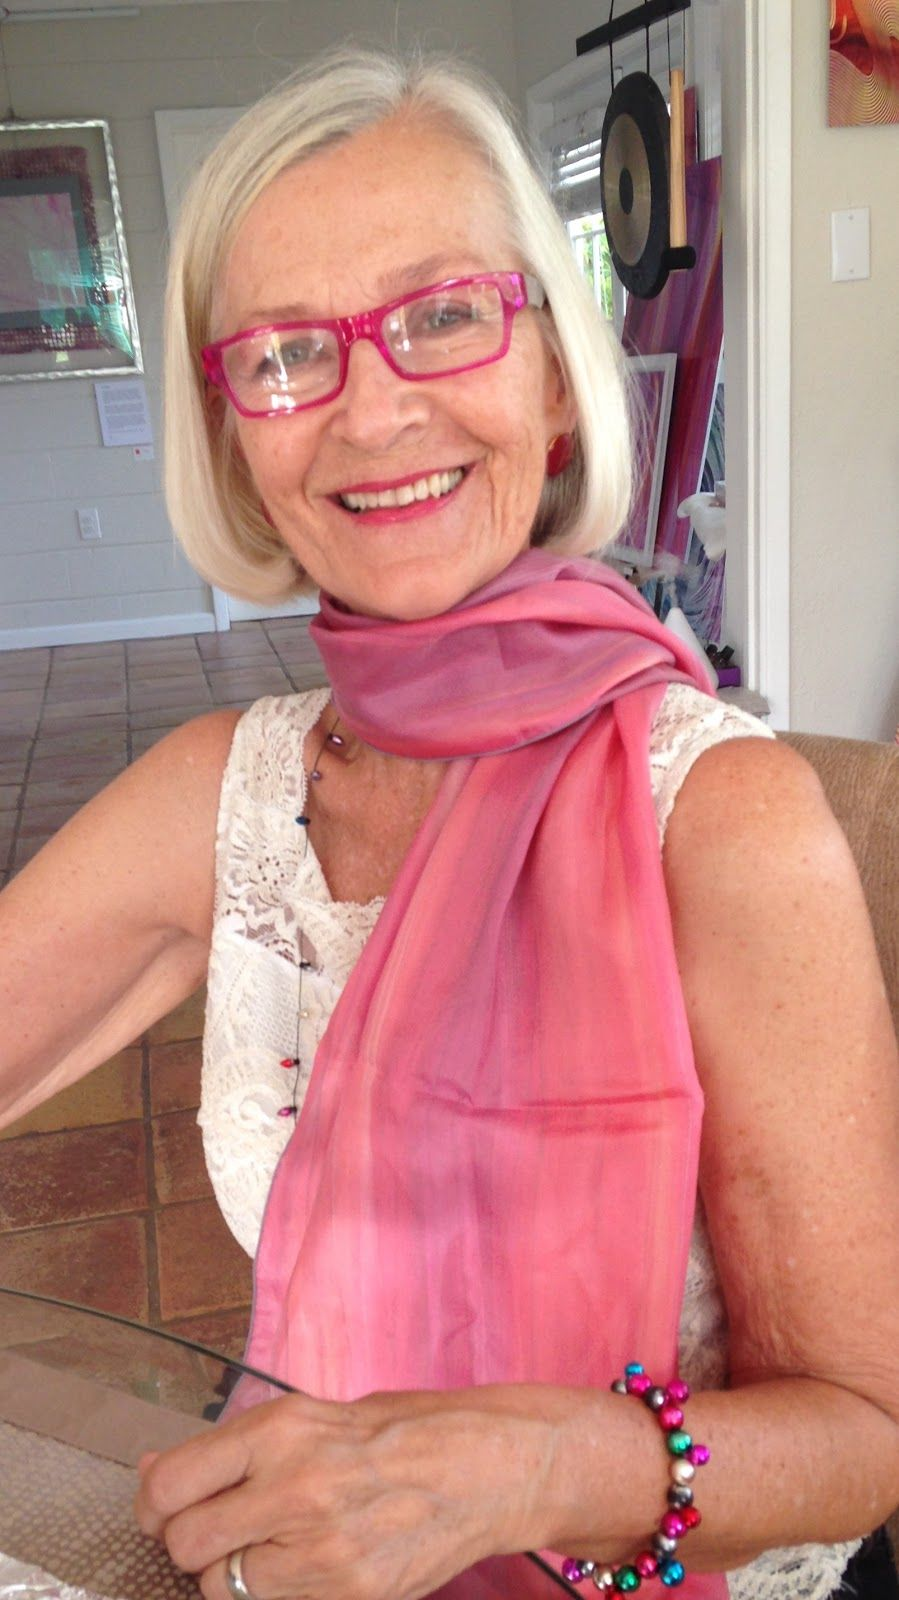 """""""Ahhh...I feel as if I am moving through life with simple elegance and mindfulness when I am wearing Lisa's scarf, Grace.""""     - Pat wearing the Grace scarf"""